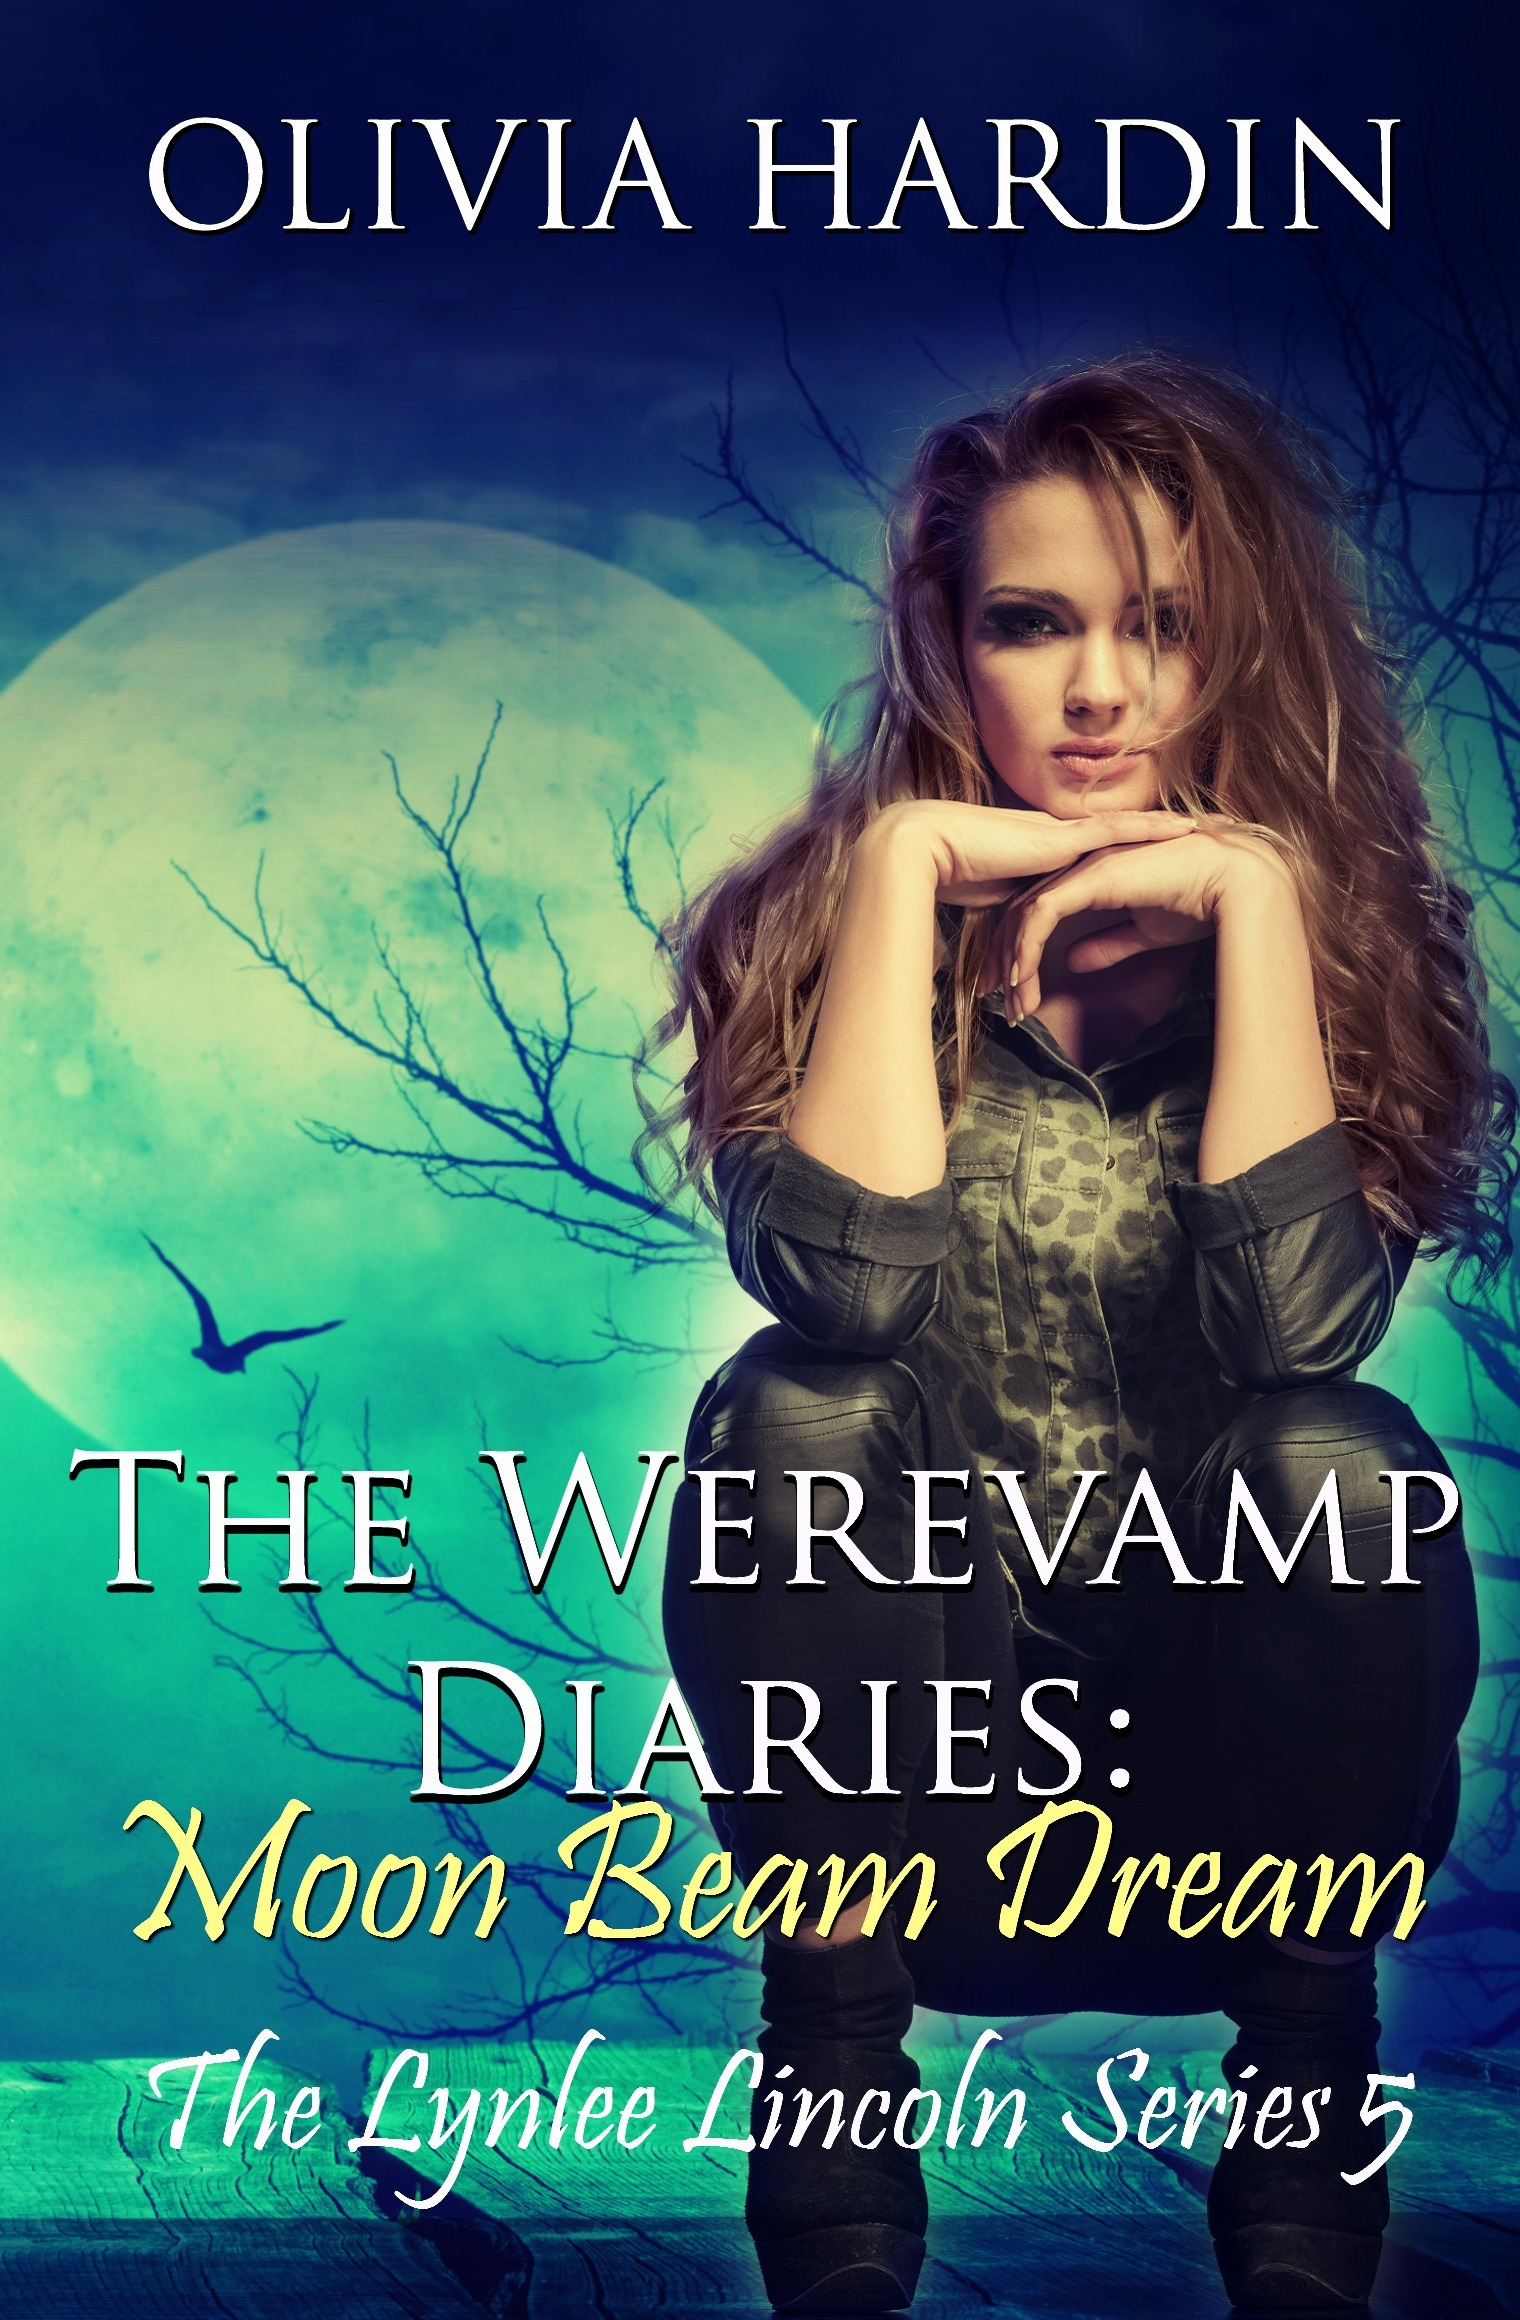 The-Werevamp-Diaries-Moon-Beam-Dream-original